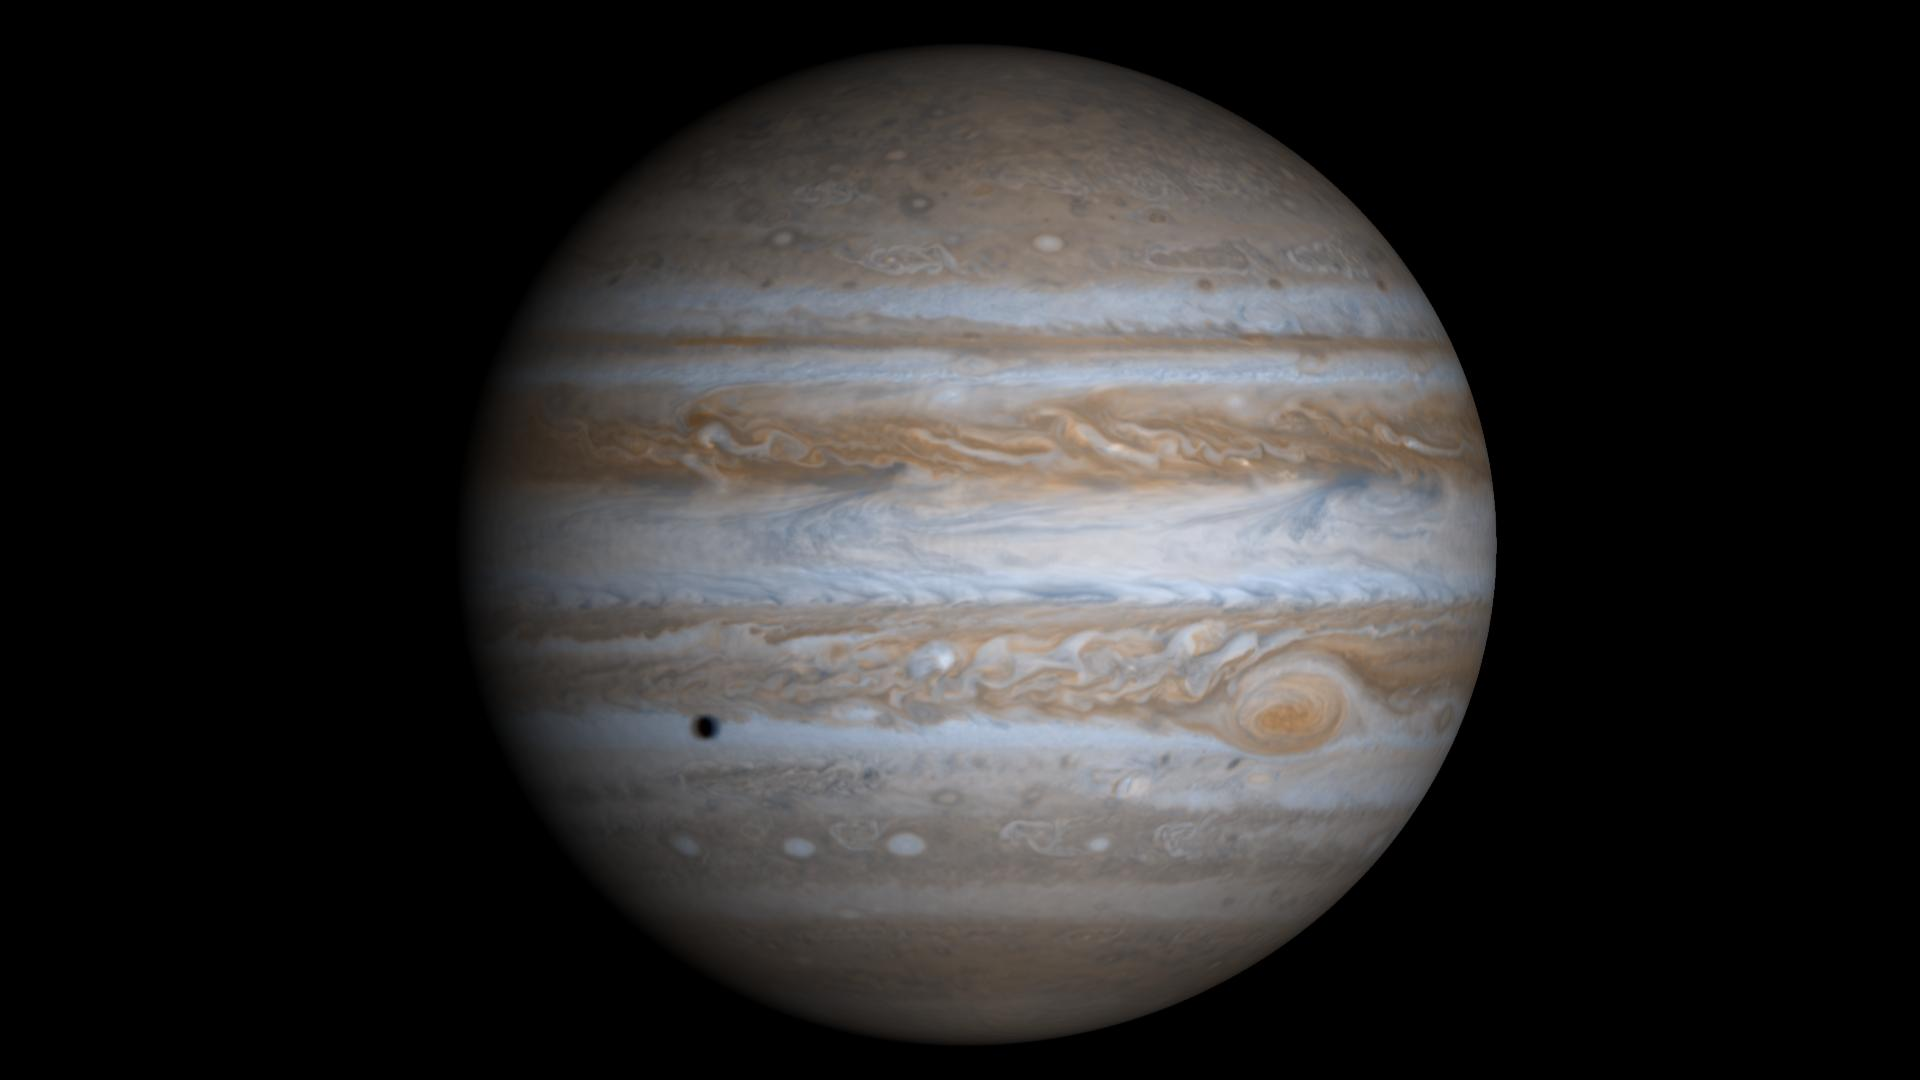 Real Pictures Of Jupiter The Planet This true-color simulated view